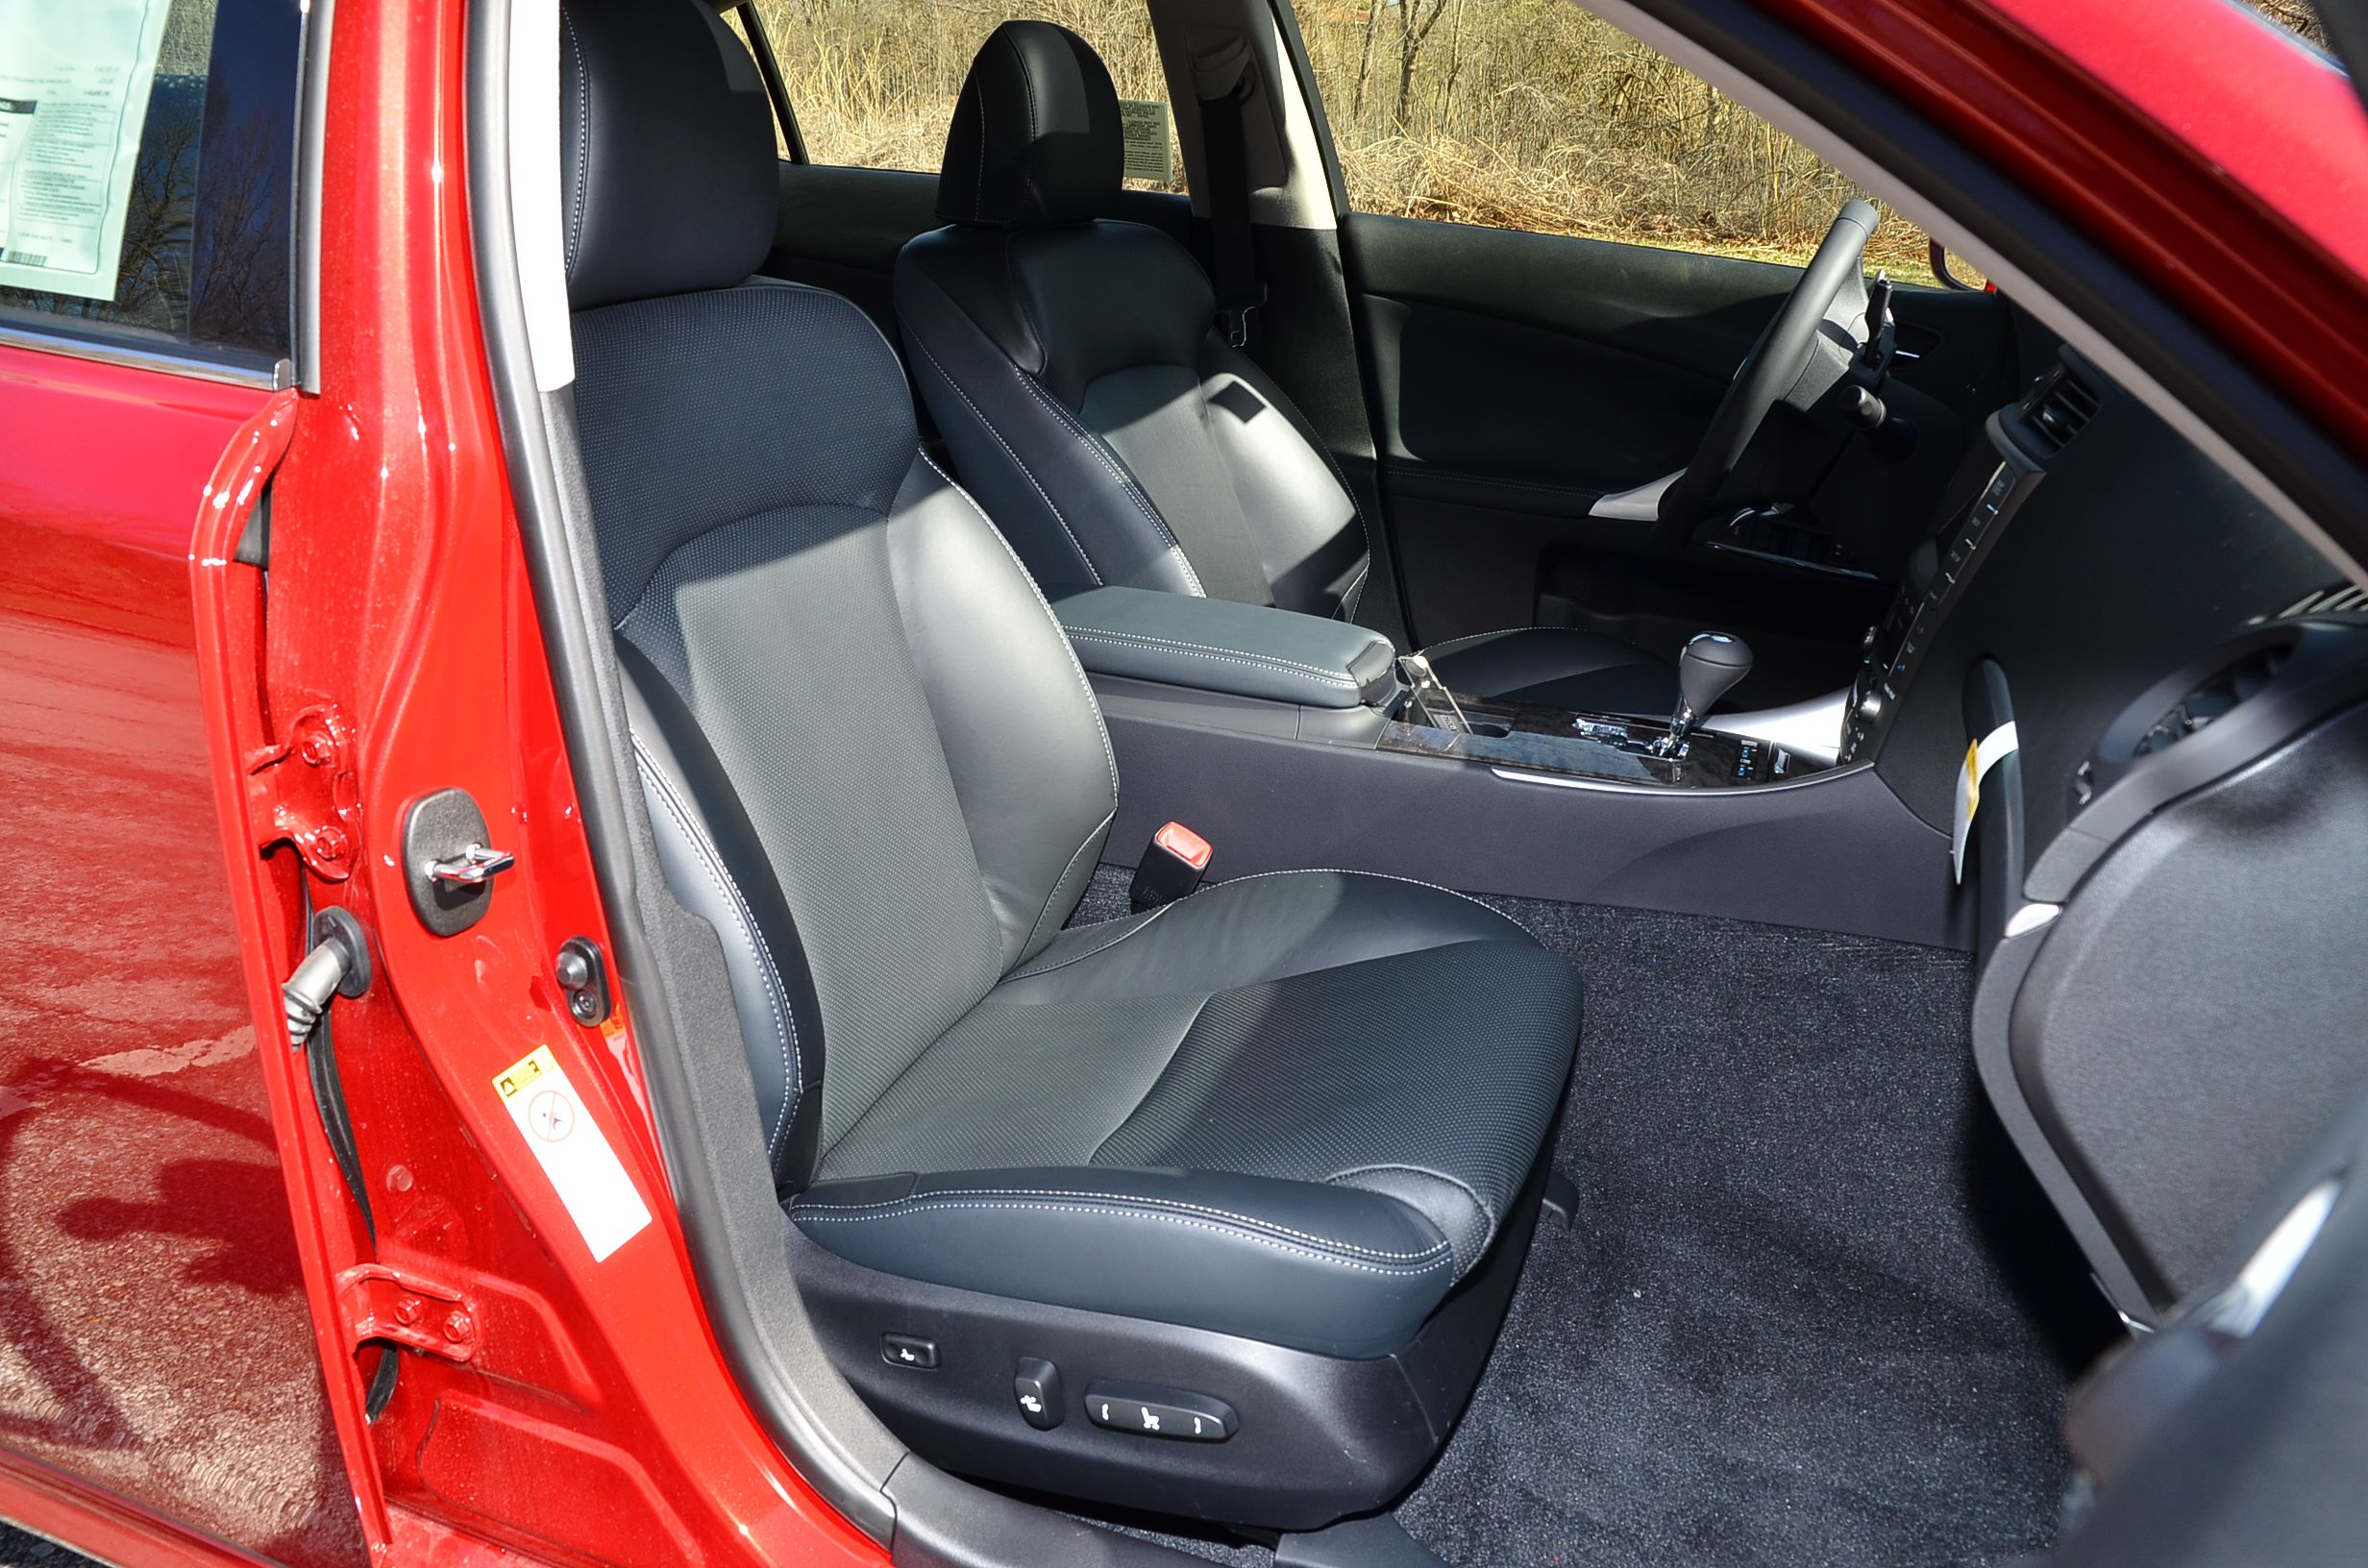 2012 lexus is in matador red mica with black leather